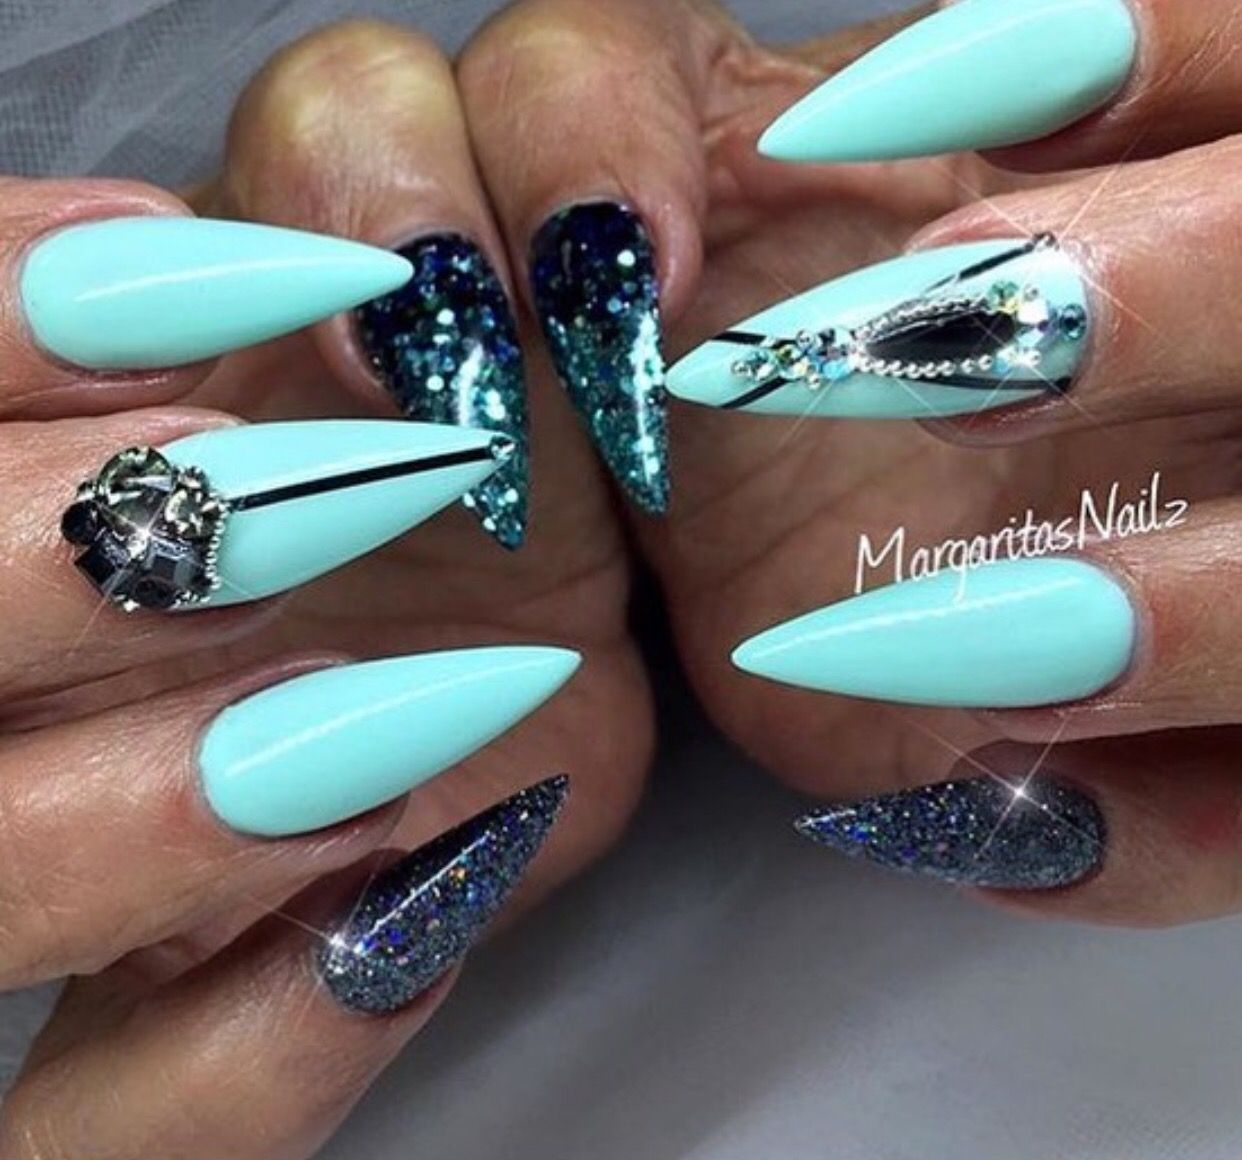 Custom pale blue and dark blue stiletto nails | Nails | Pinterest ...